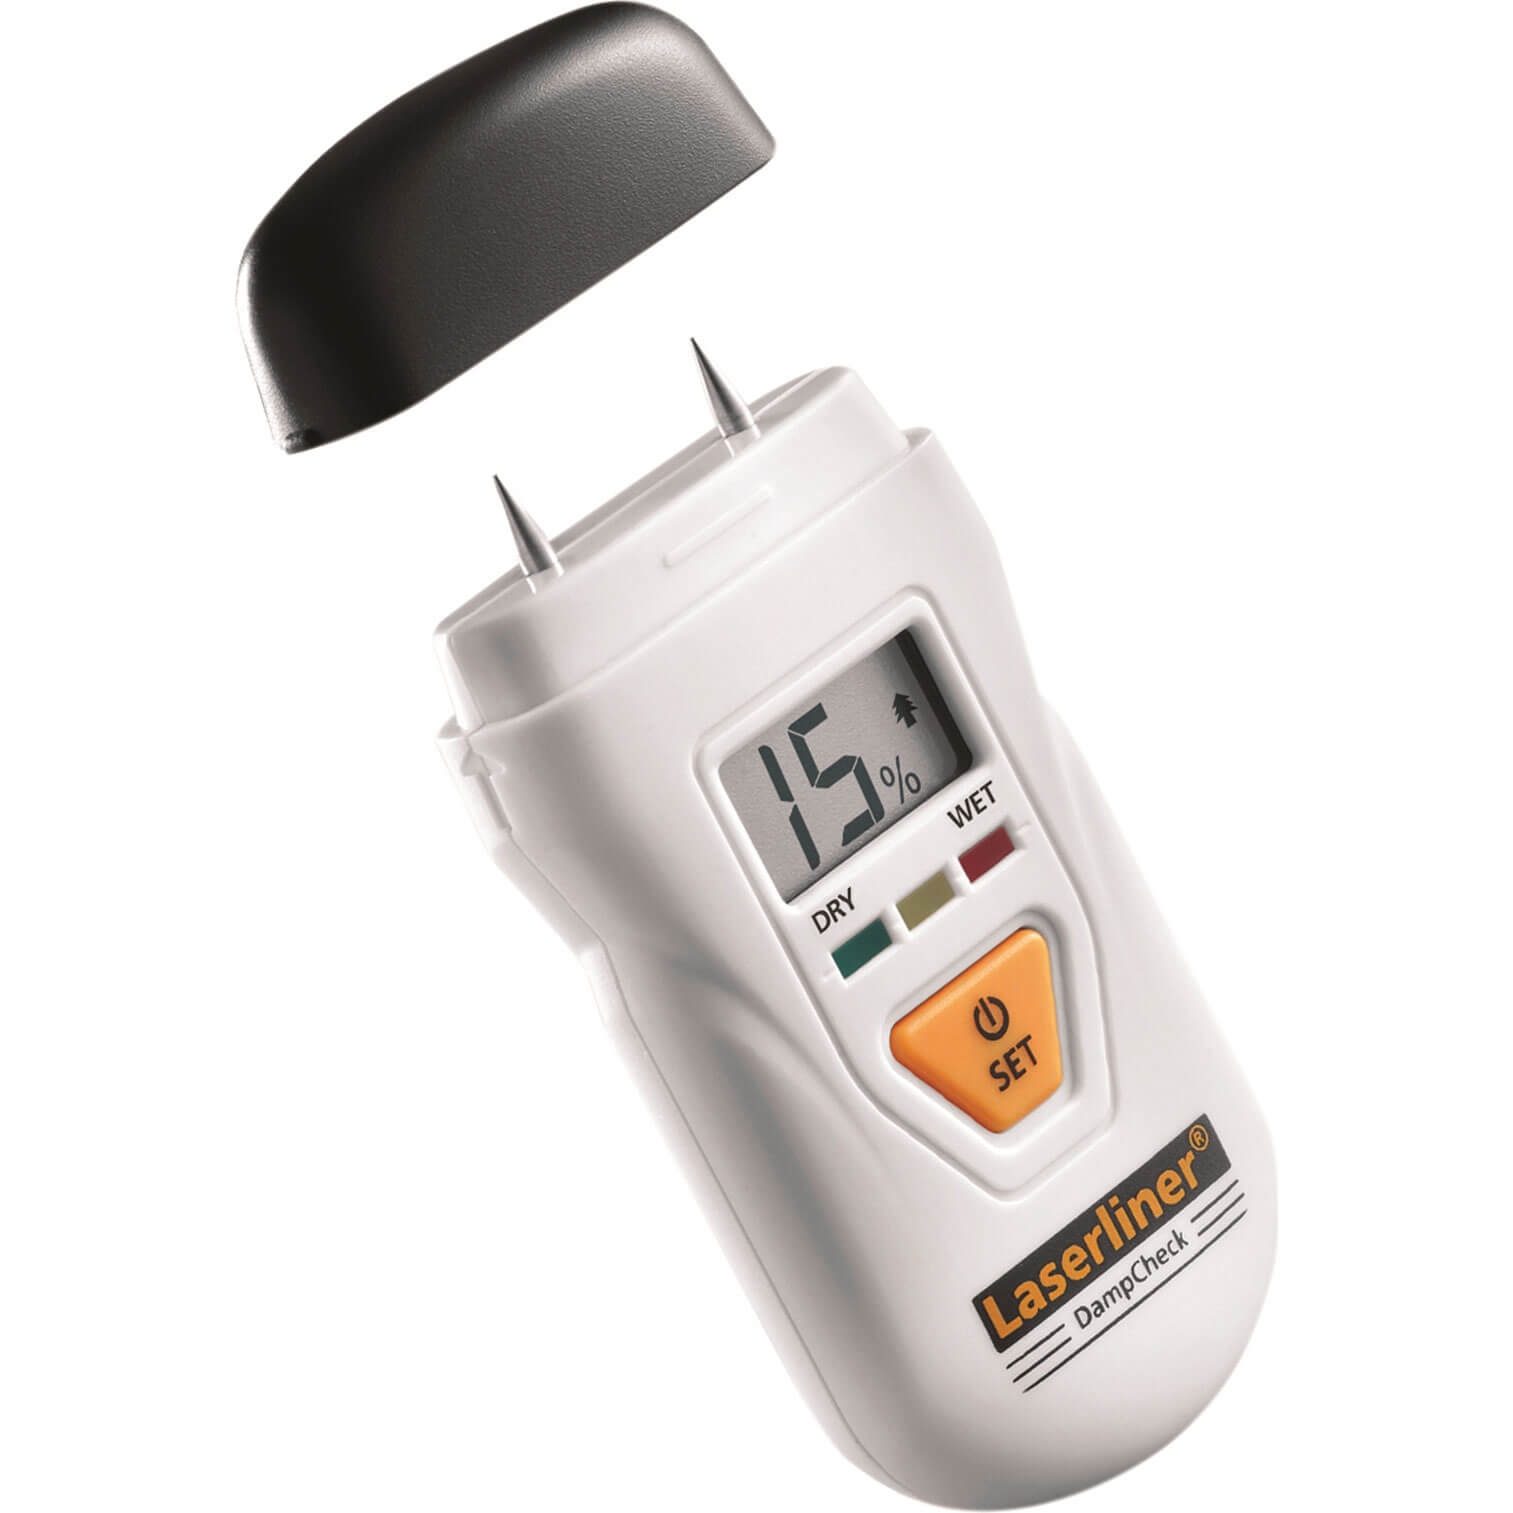 Image of LaserLiner Dampcheck Damp Meter